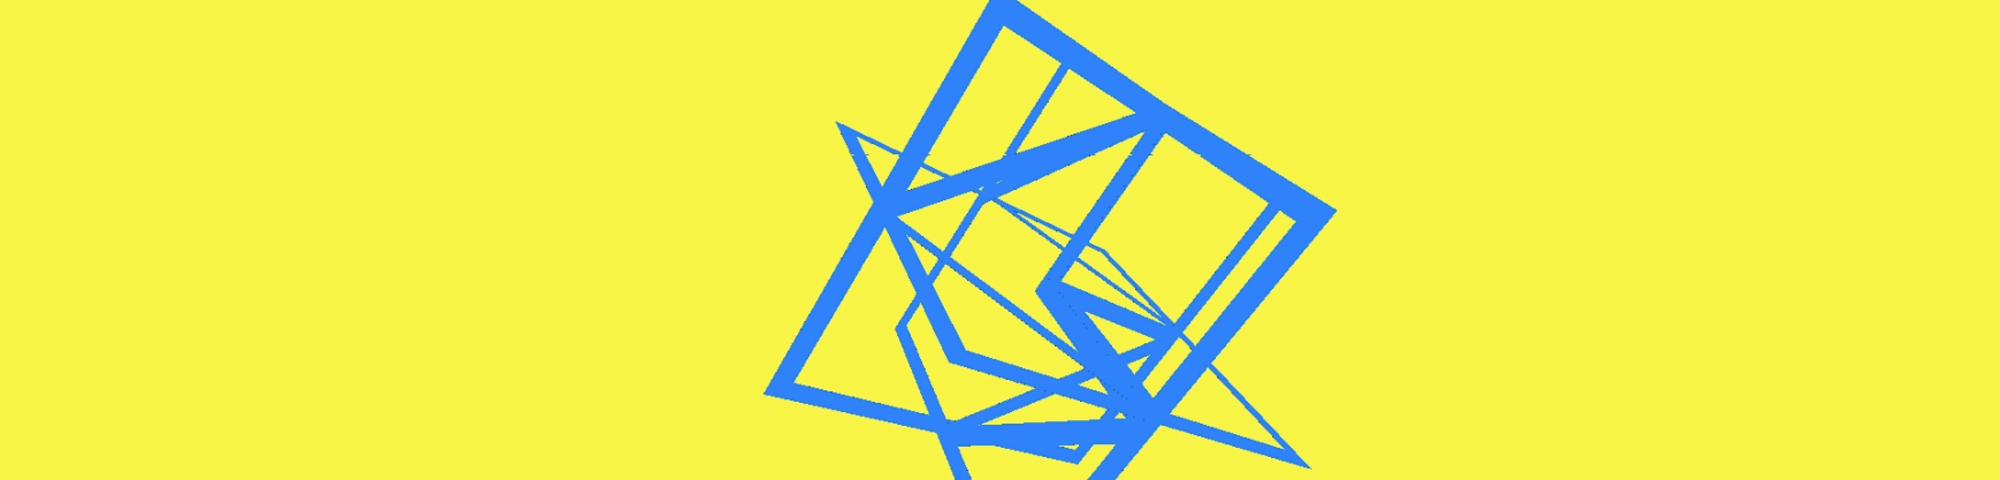 A blue box on a bright yellow background